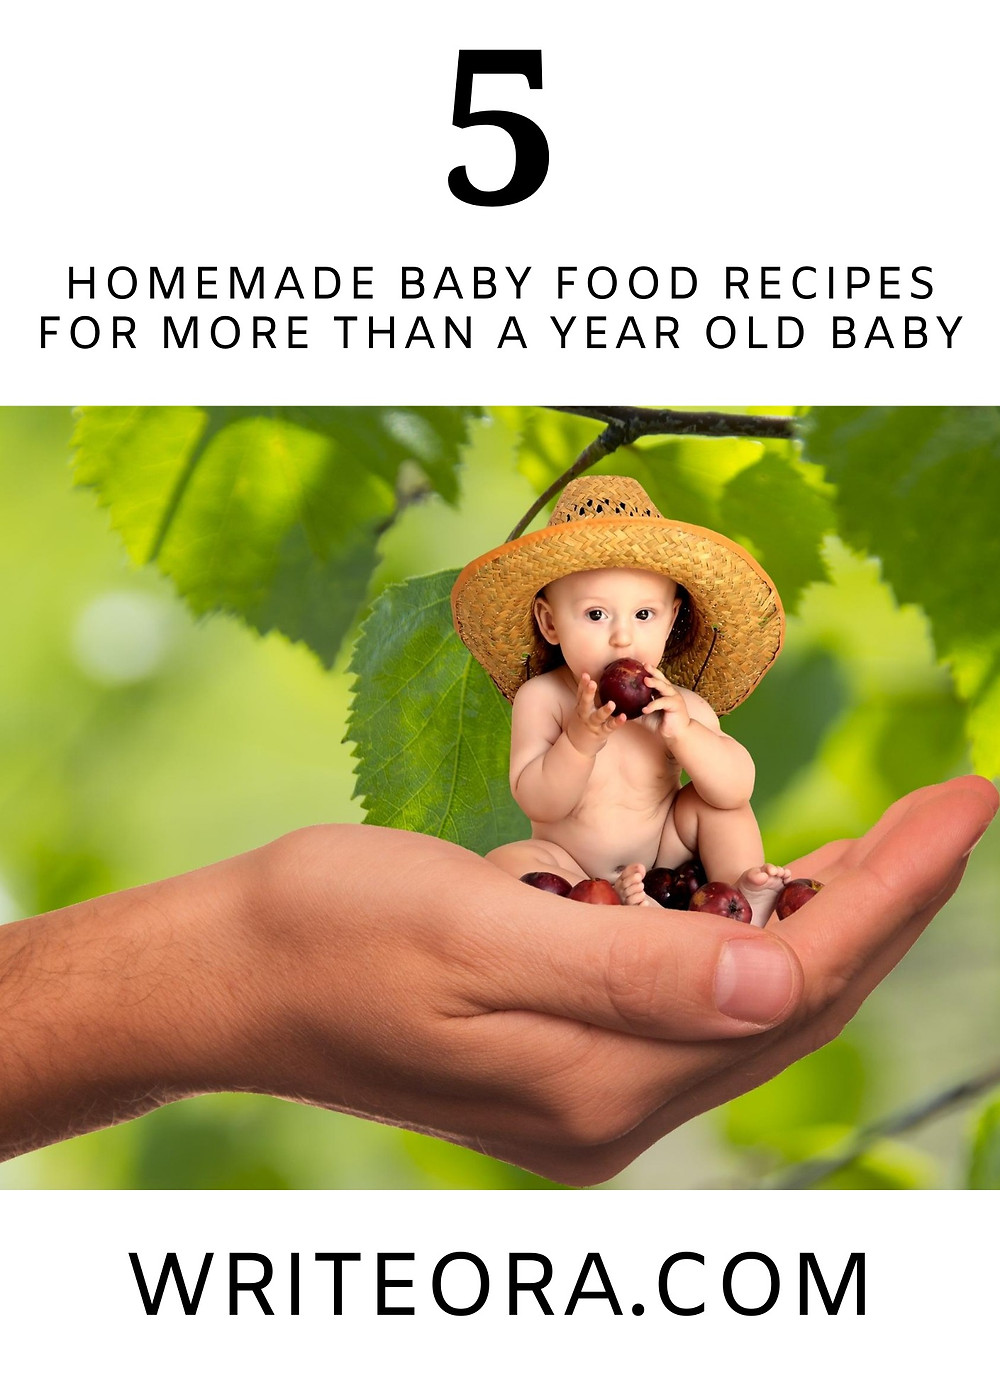 HOMEMADE BABY FOOD RECIPES FOR MORE THAN A YEAR OLD BABY